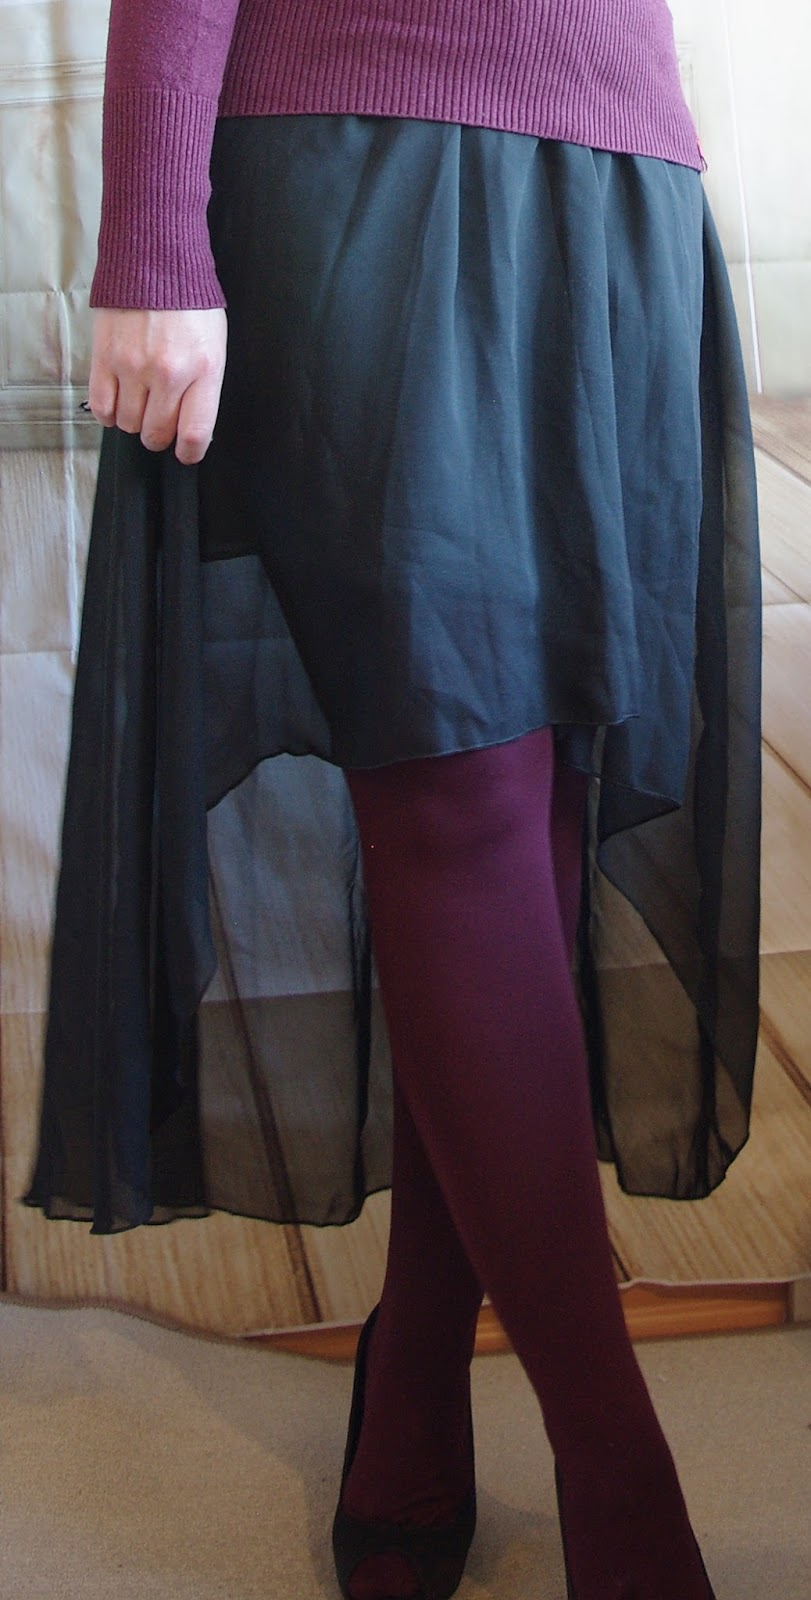 Vokuhila Skirt, Sweater and colored tights